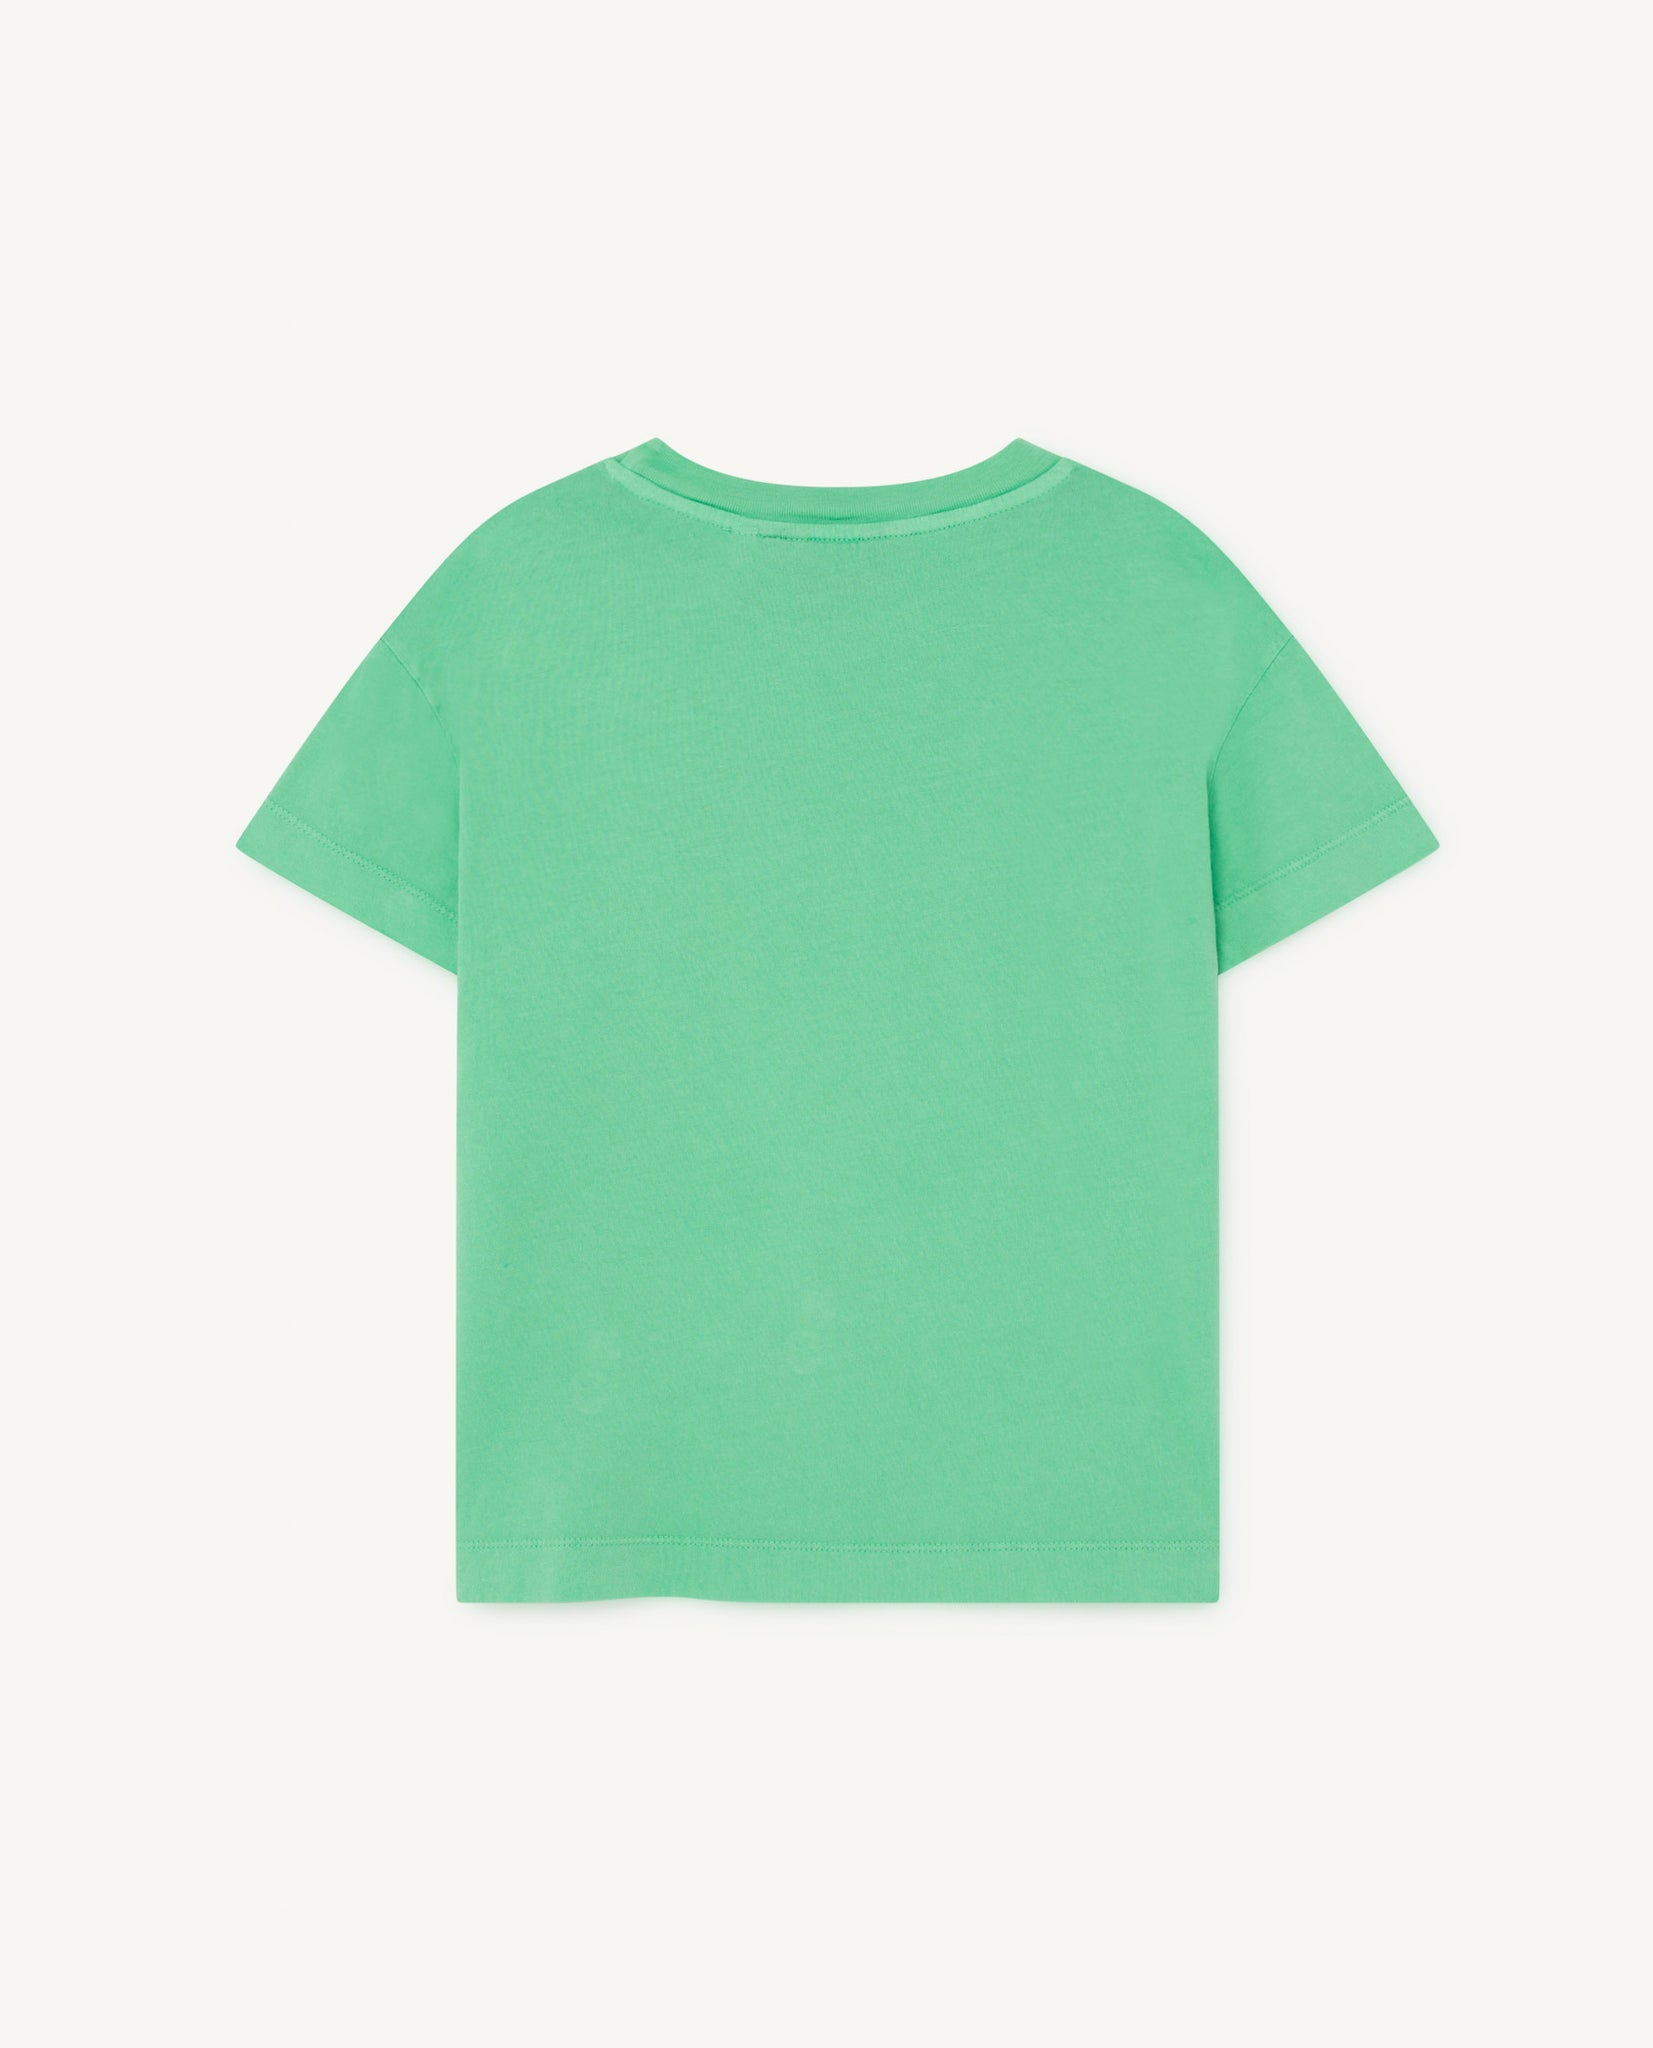 Rooster Kids T-Shirt - Green Sun